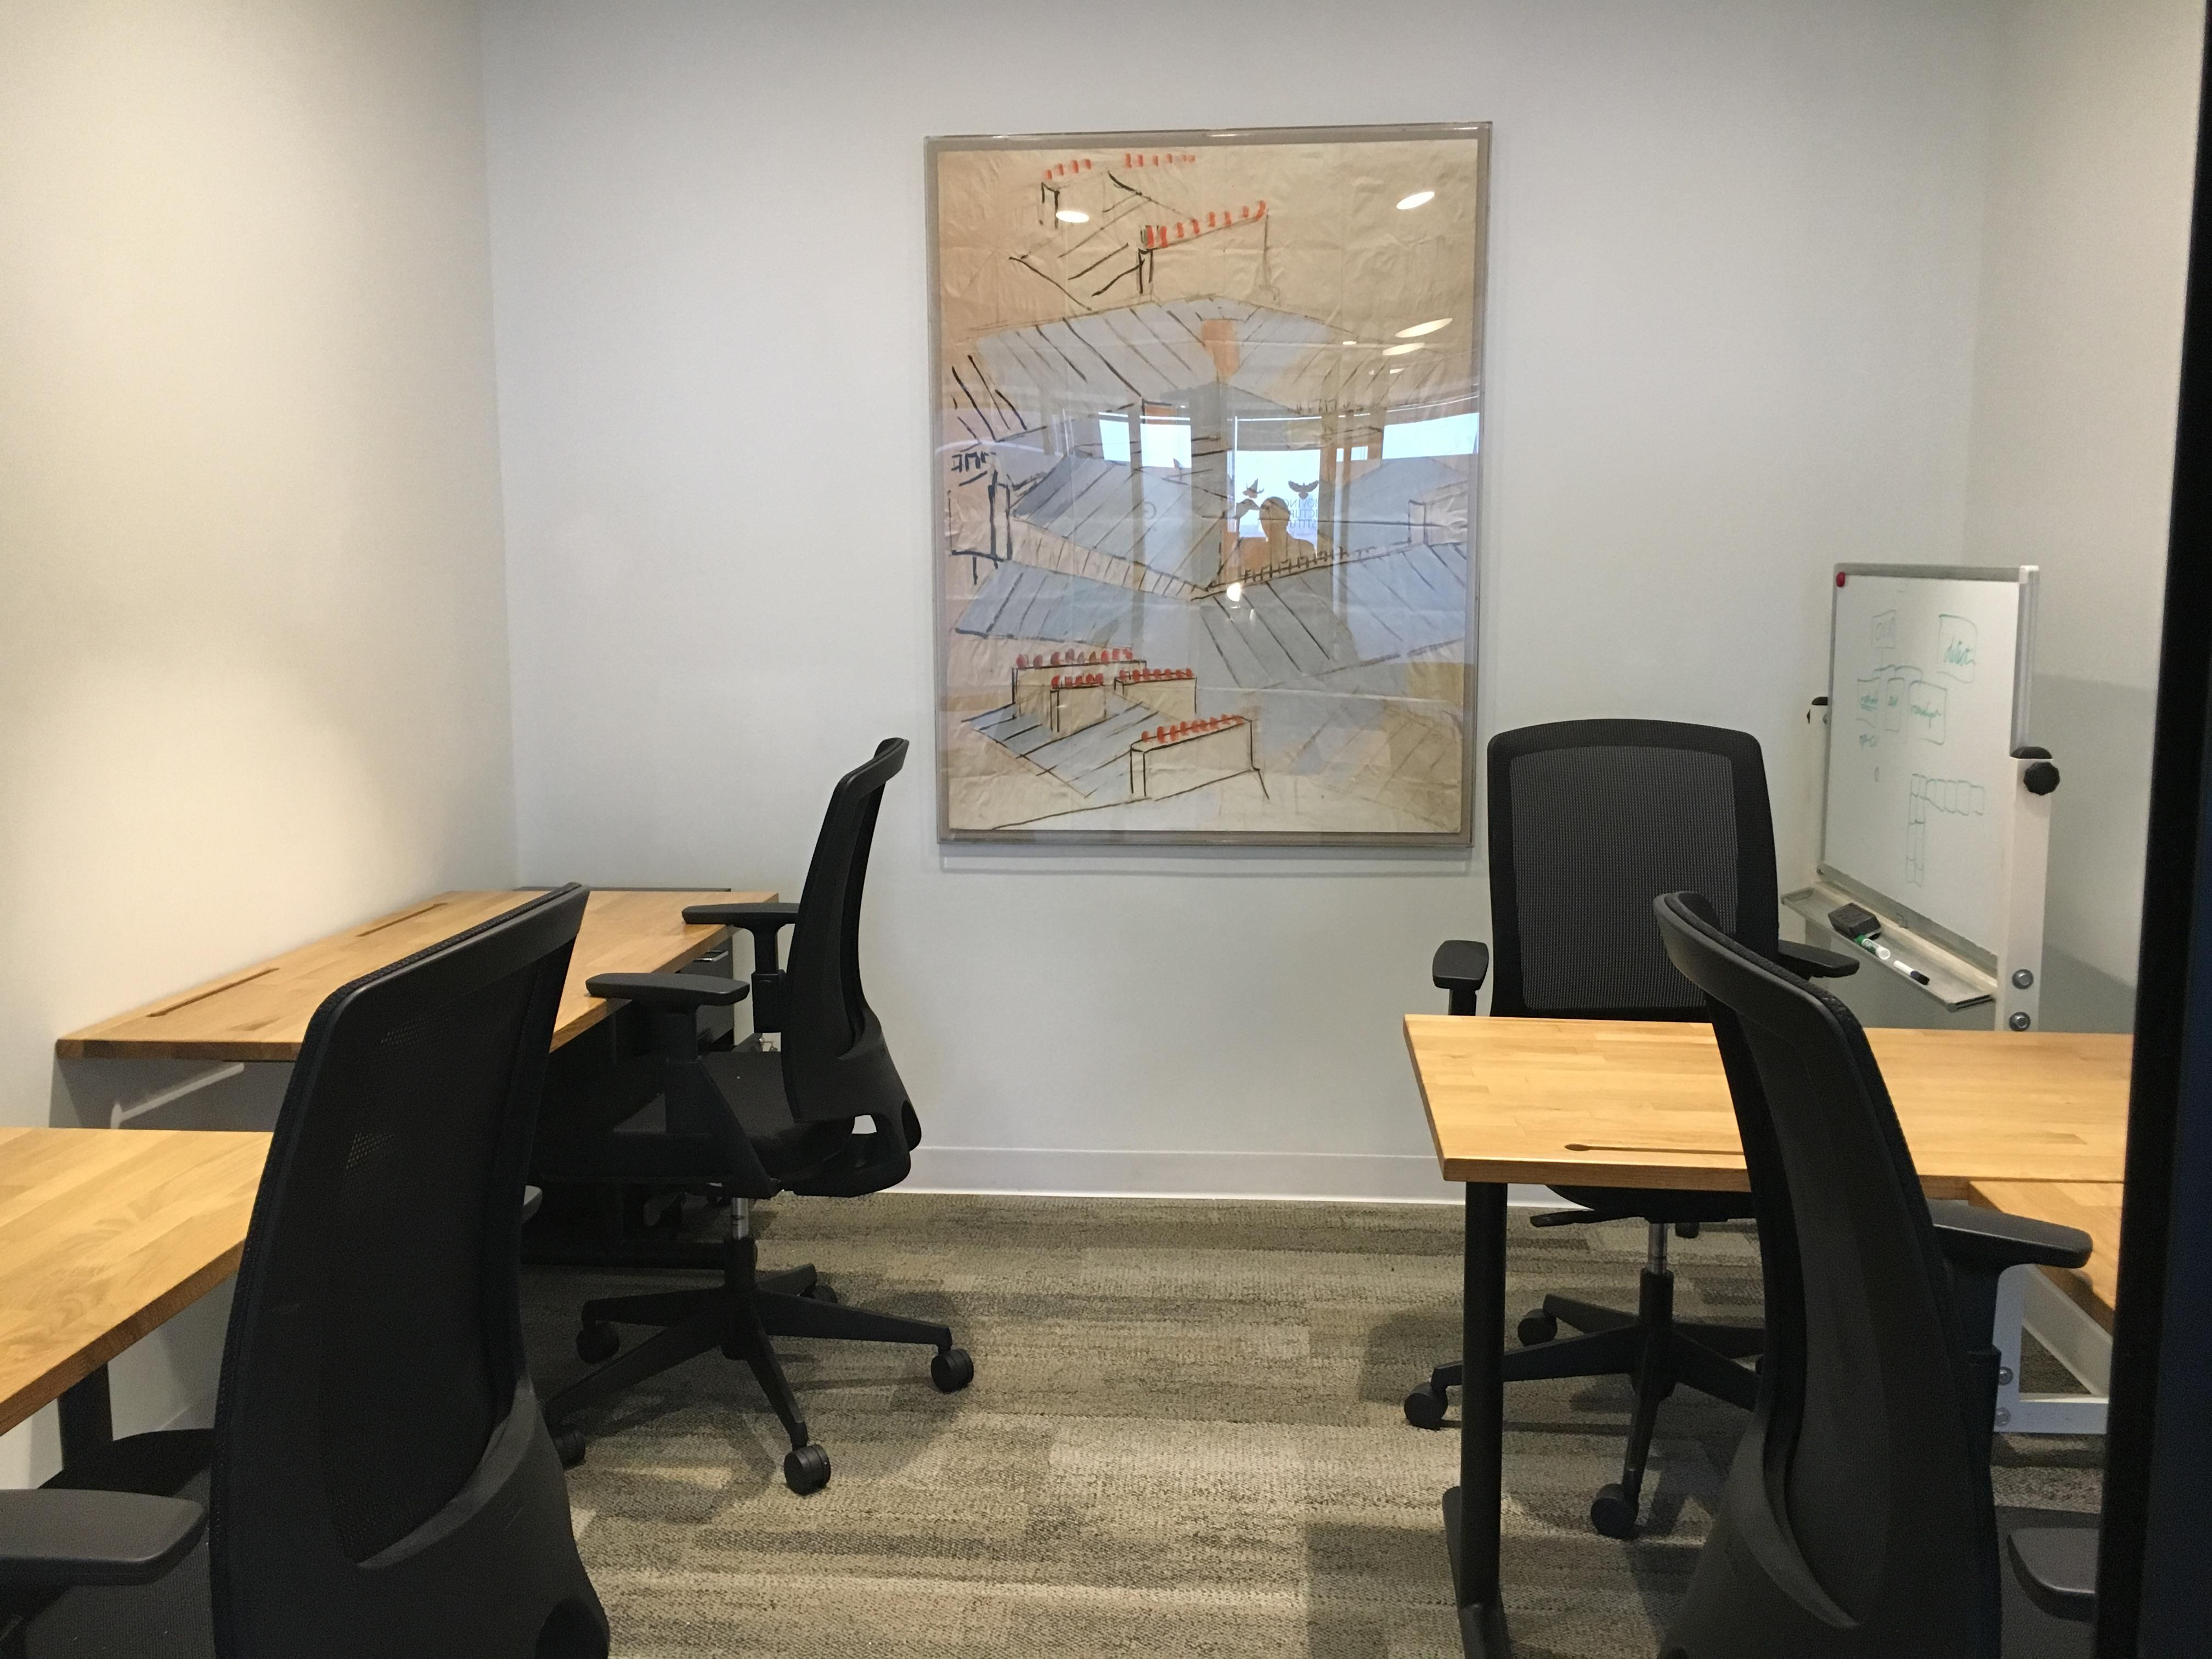 Village Workspaces - Up to 4 person office